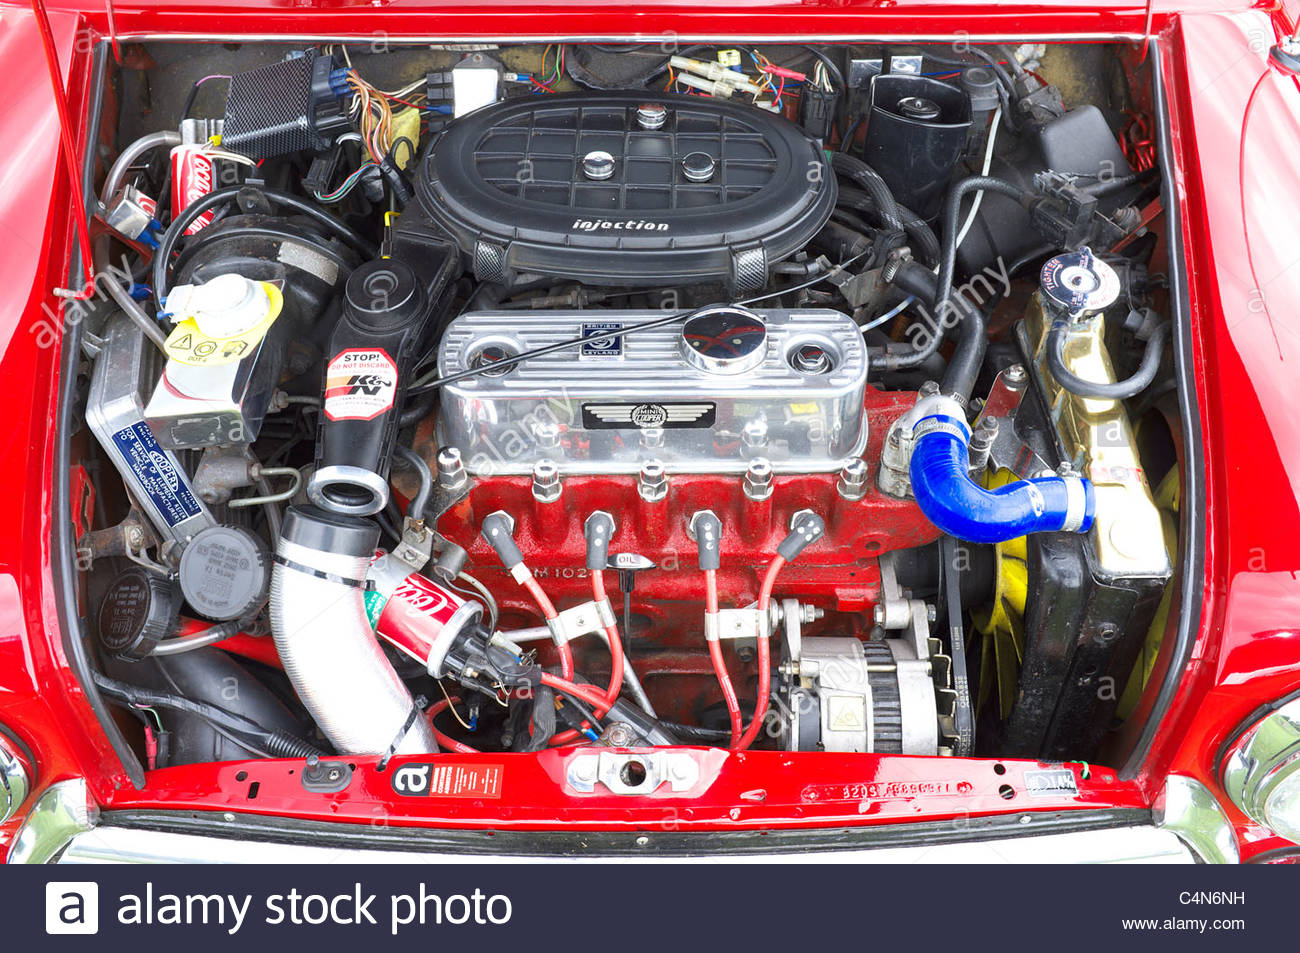 engine compartment stockfotos engine compartment bilder alamy. Black Bedroom Furniture Sets. Home Design Ideas